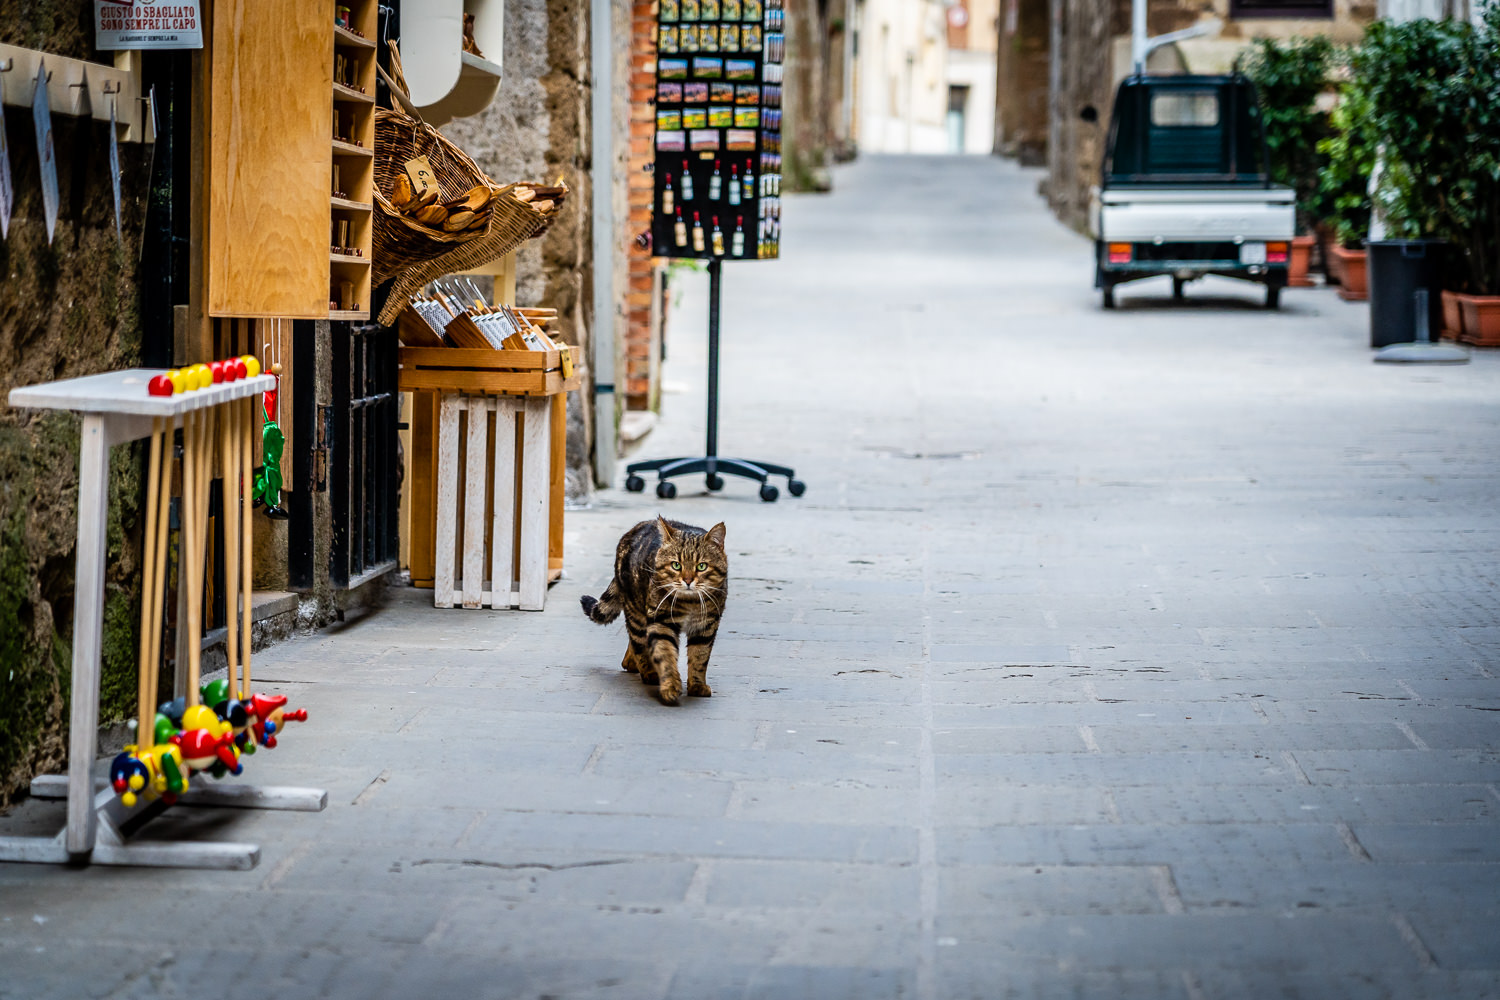 Italy Pic of the Day Pitigliano Stray Cat